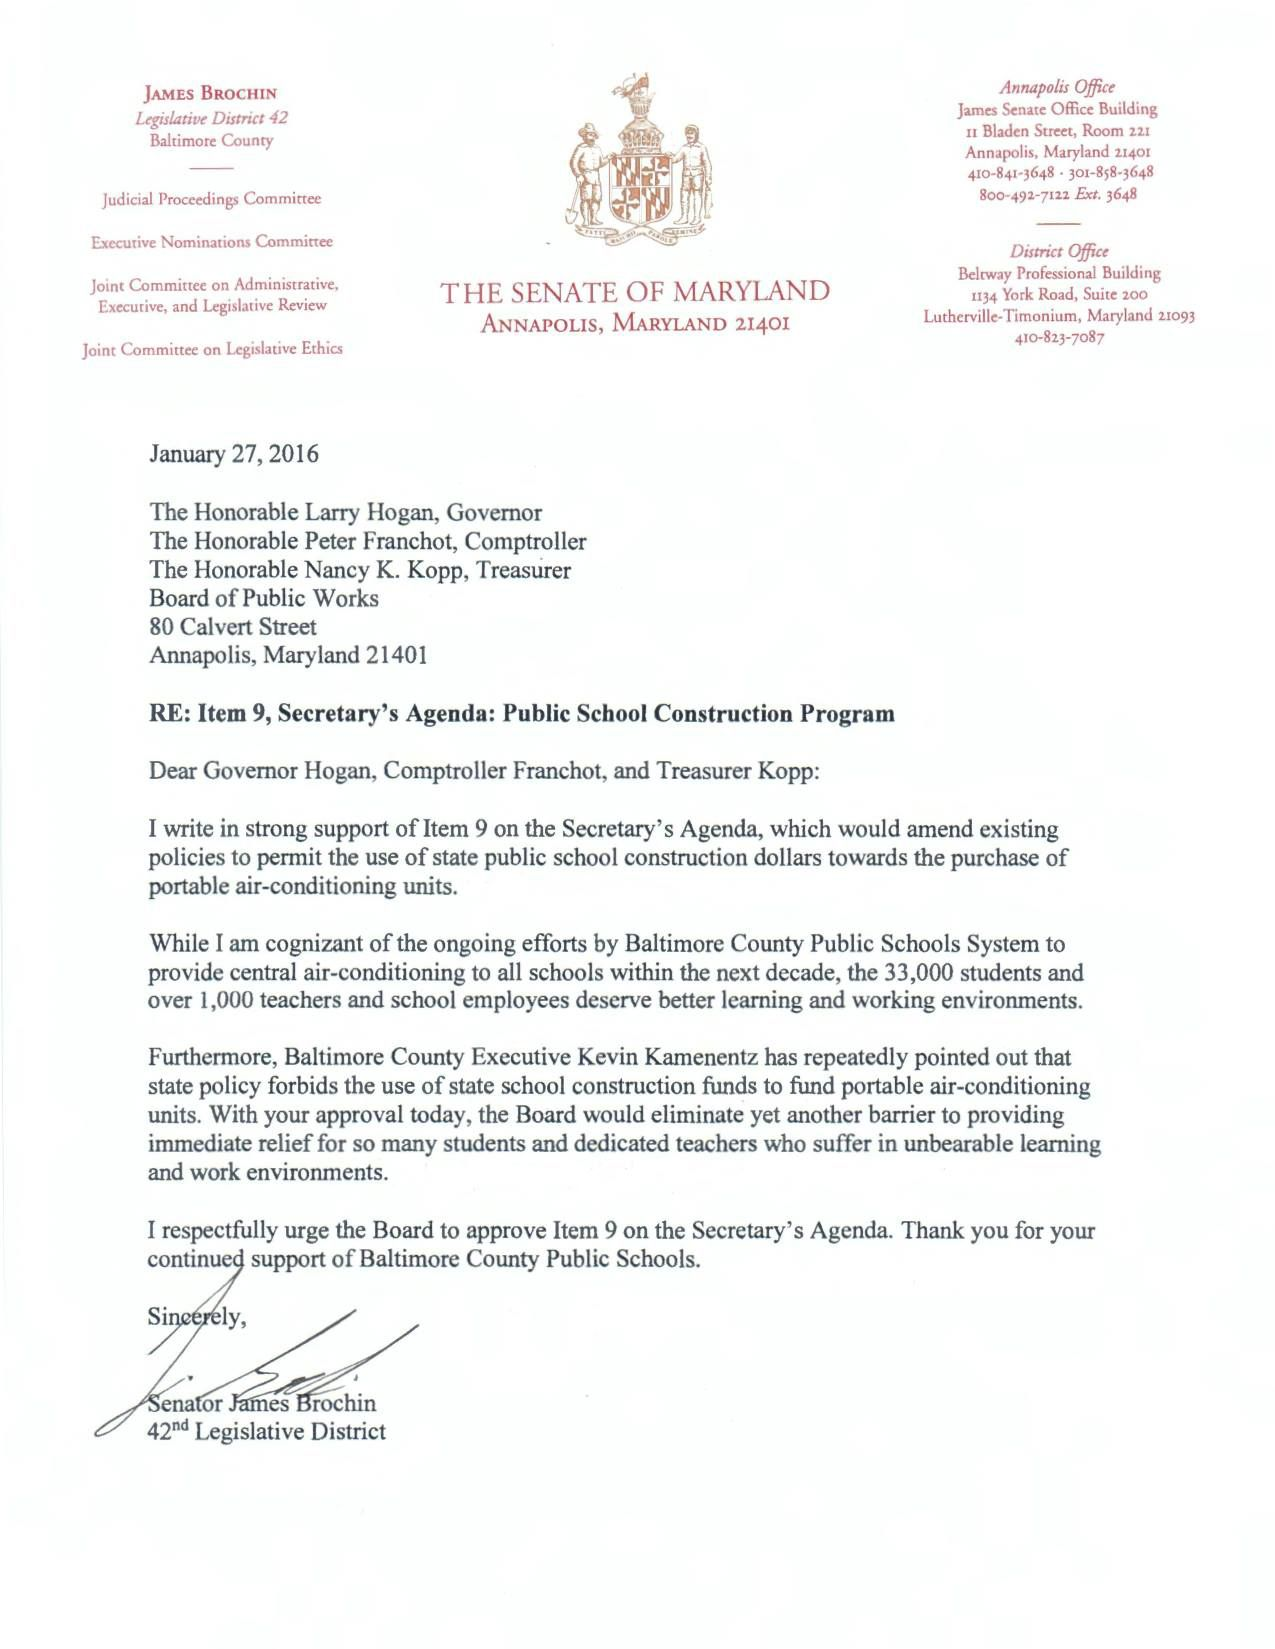 Letter Of Support From Senator James Brochin  Support For State